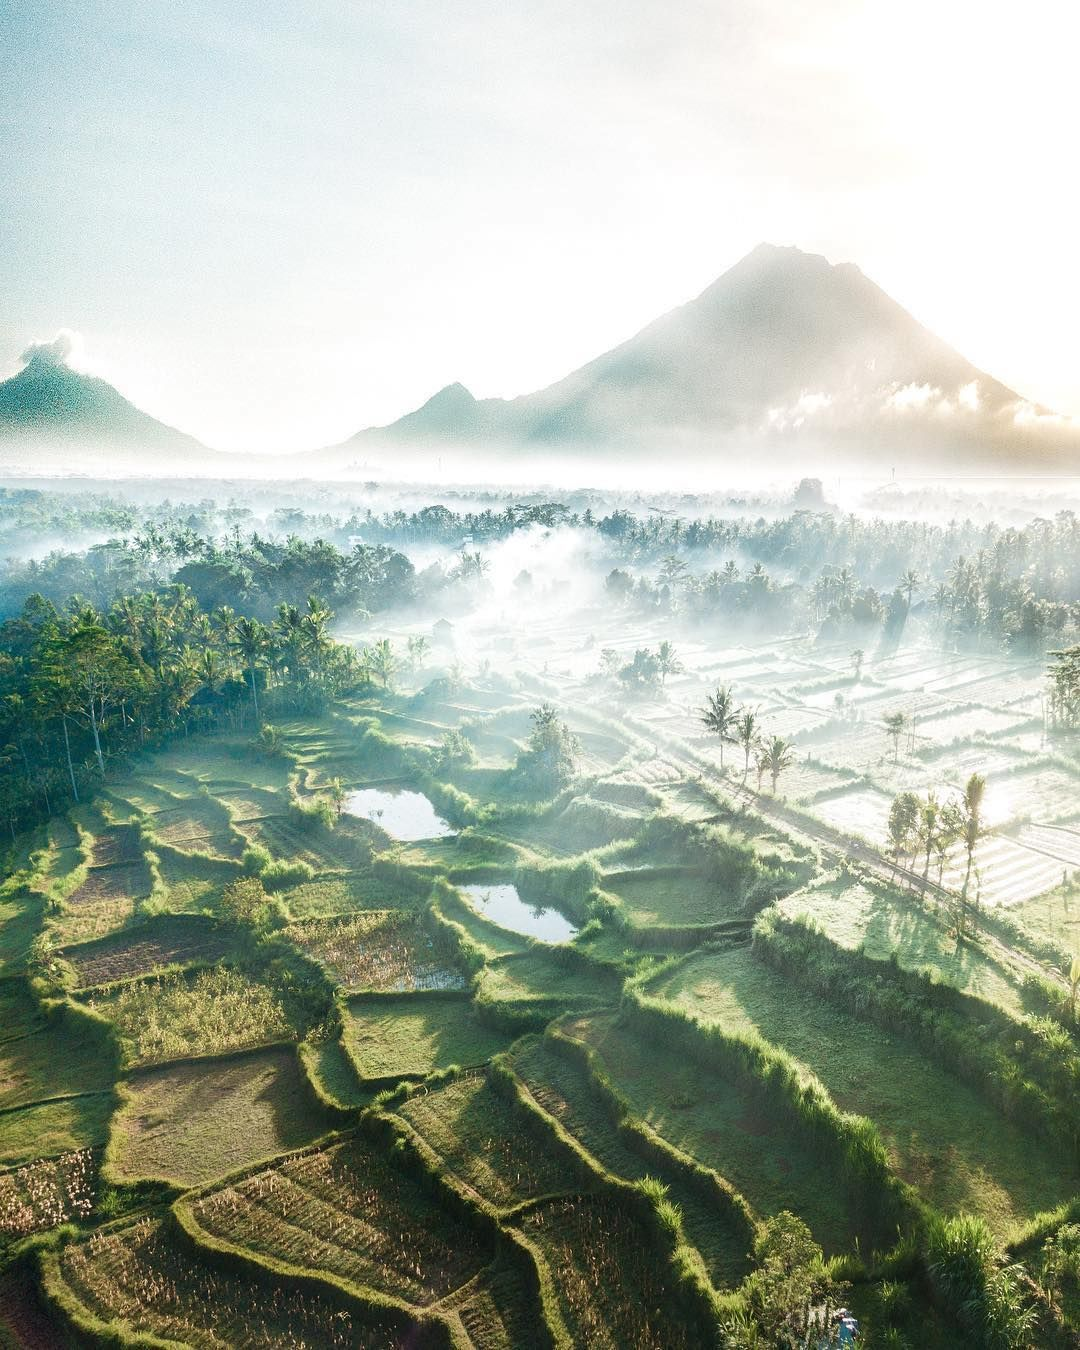 Stunning Drone Photos Offer A Beautiful Glimpse Of Asia From Above Drone Photos Landscape Photography Fine Art Landscape Photography